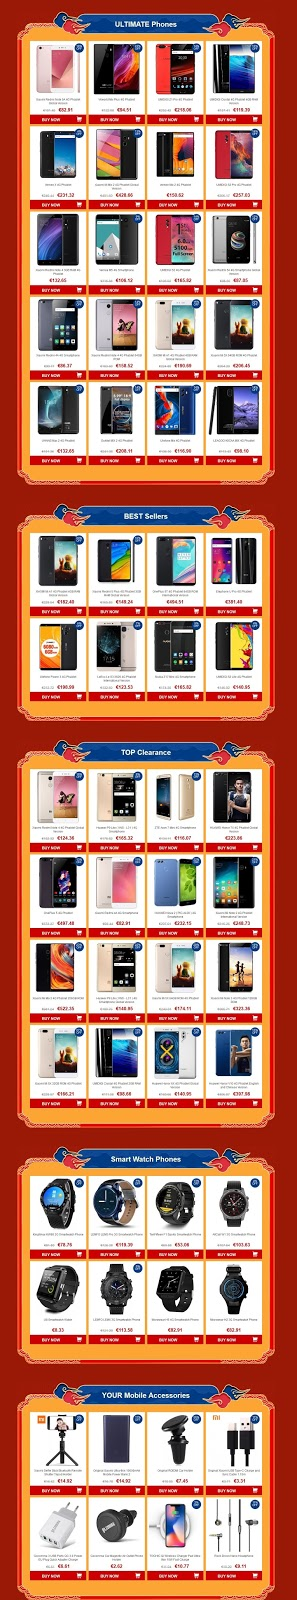 https://www.gearbest.com/promotion-best-mobile-phones-special-1970.html?lkid=13128101